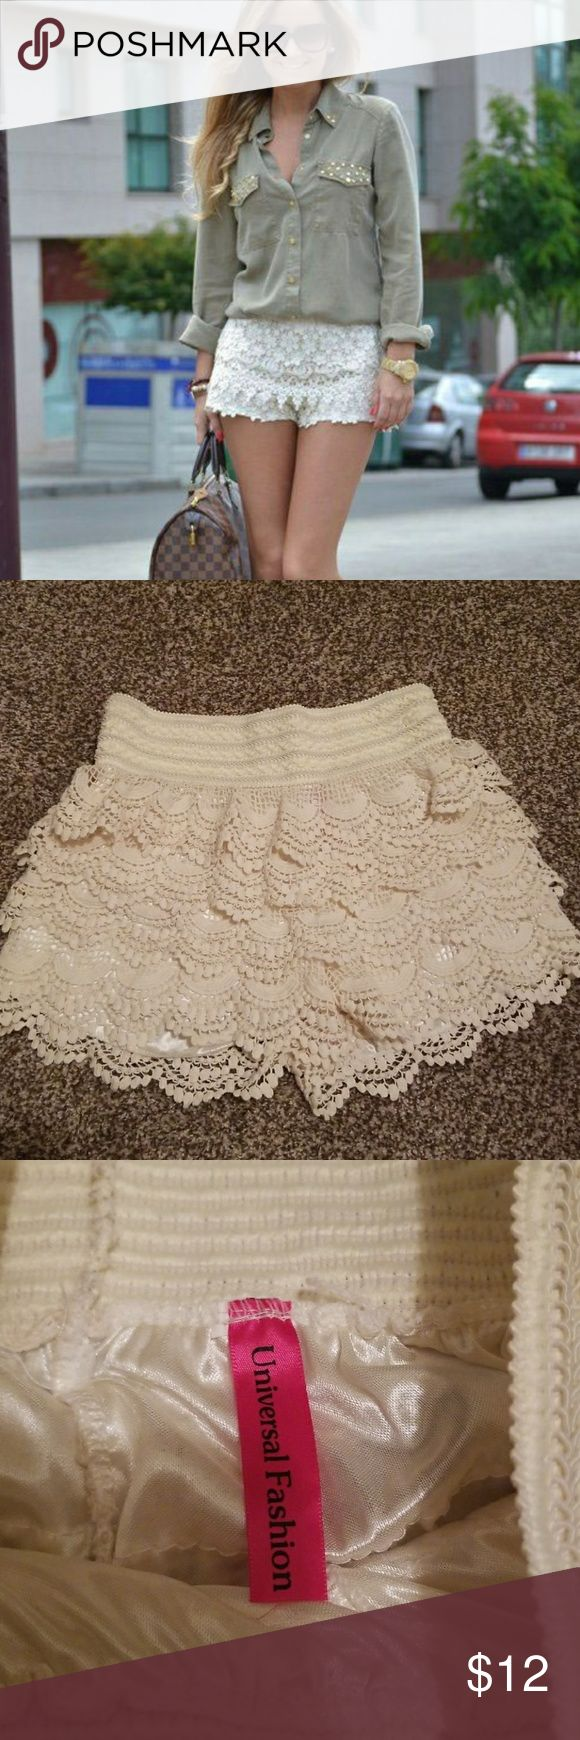 CREAM LACE SHORTS SUPER CUTE SIZE SMALL CREAM LACE SHORTS IN GREAT CONDITION Shorts